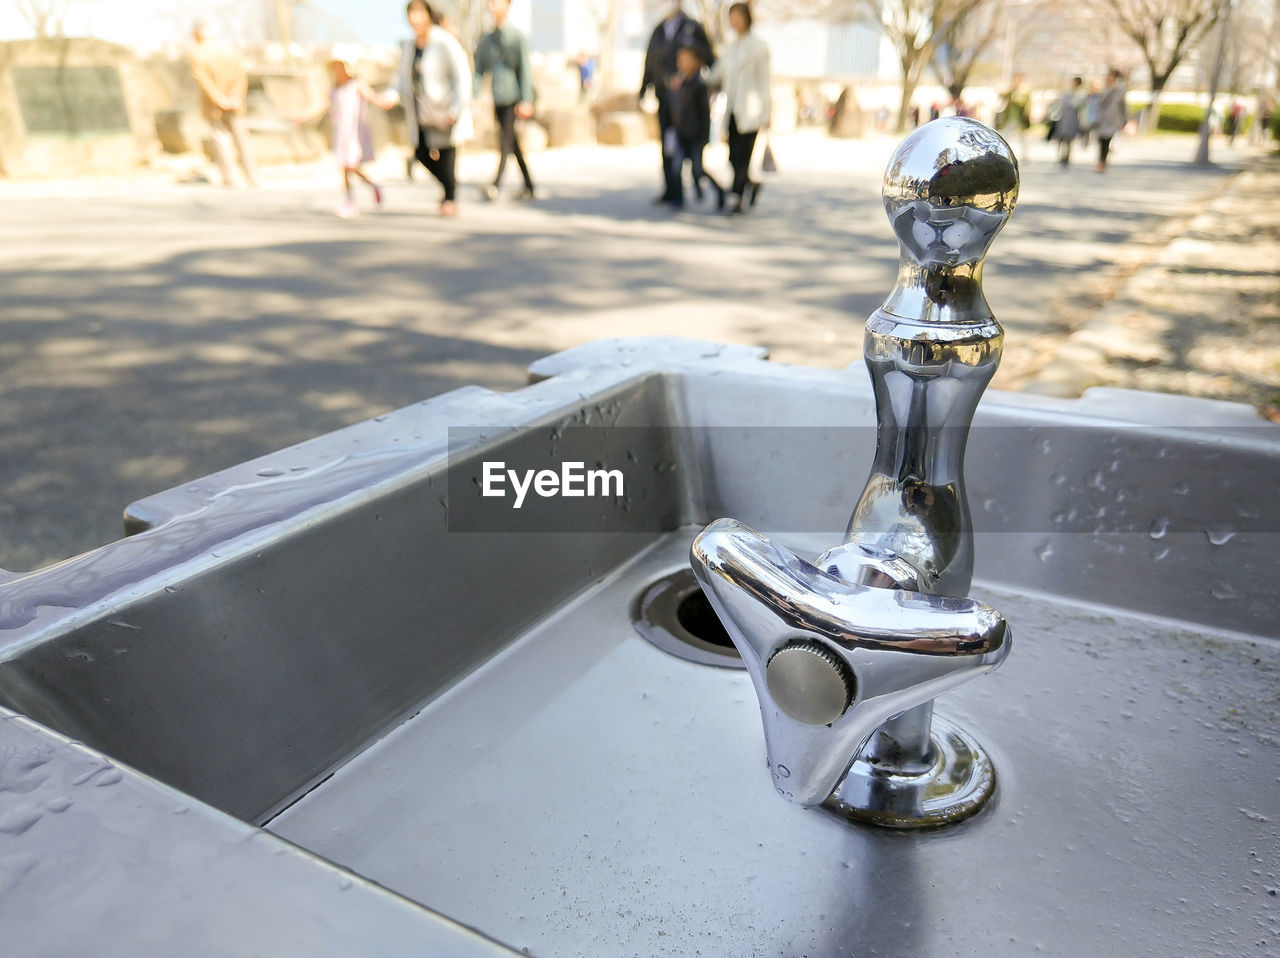 focus on foreground, day, close-up, metal, incidental people, outdoors, city, faucet, street, silver colored, nature, sunlight, still life, road, water, high angle view, table, reflection